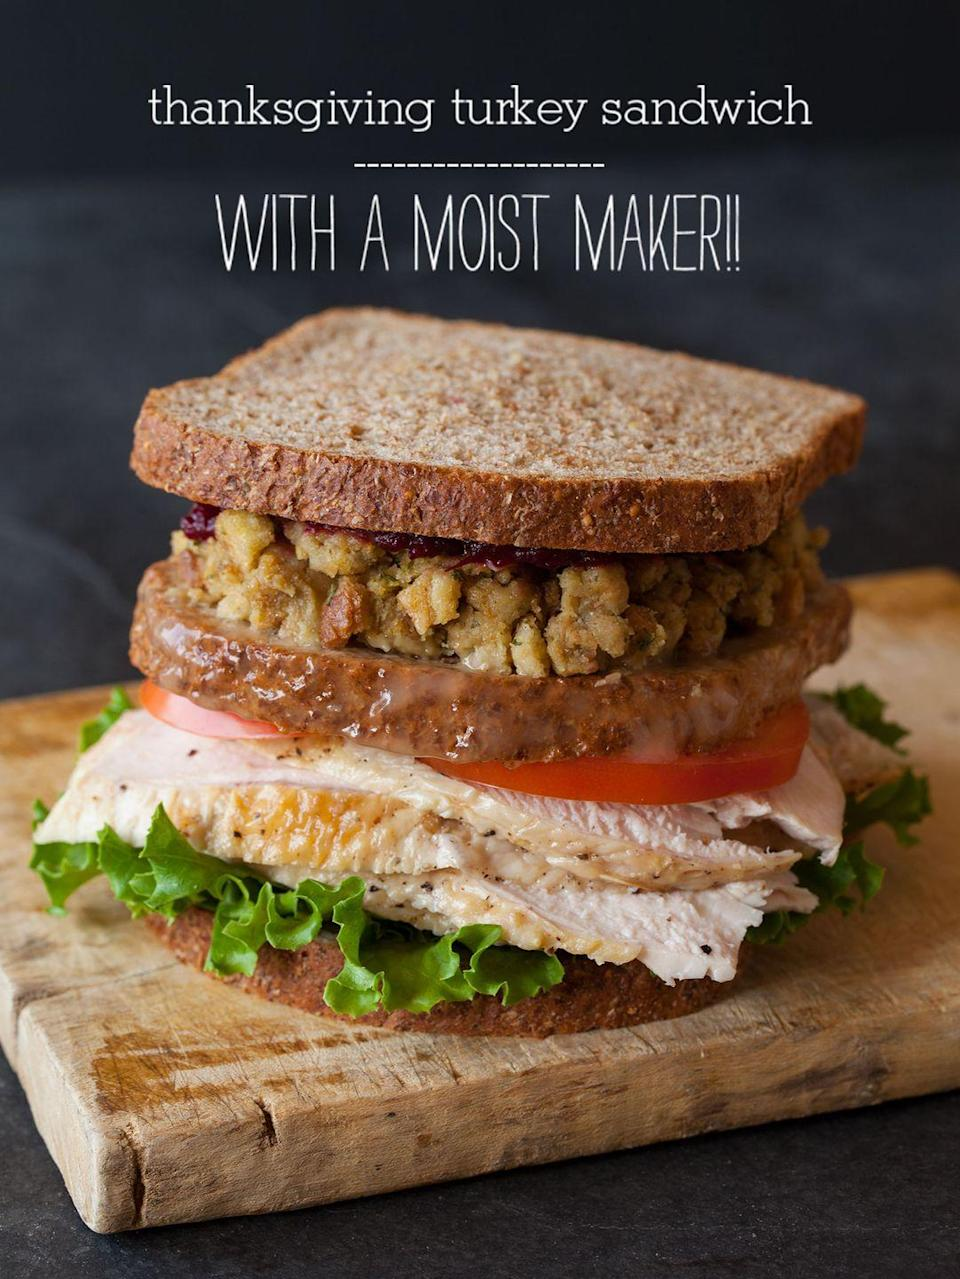 """<p>Stuffing belongs in your leftover sandwich and so does a moist maker. For those who don't watch <em>Friends</em>, a moist maker is when you insert a slice of gravy-soaked bread into your Thanksgiving sandwich. Sheer genius. </p><p><a href=""""http://www.spoonforkbacon.com/2011/11/thanksgiving-turkey-sandwich-with-a-moist-maker/"""" rel=""""nofollow noopener"""" target=""""_blank"""" data-ylk=""""slk:Get the recipe from Spoon Fork Bacon »"""" class=""""link rapid-noclick-resp""""><em>Get the recipe from Spoon Fork Bacon »</em></a></p>"""